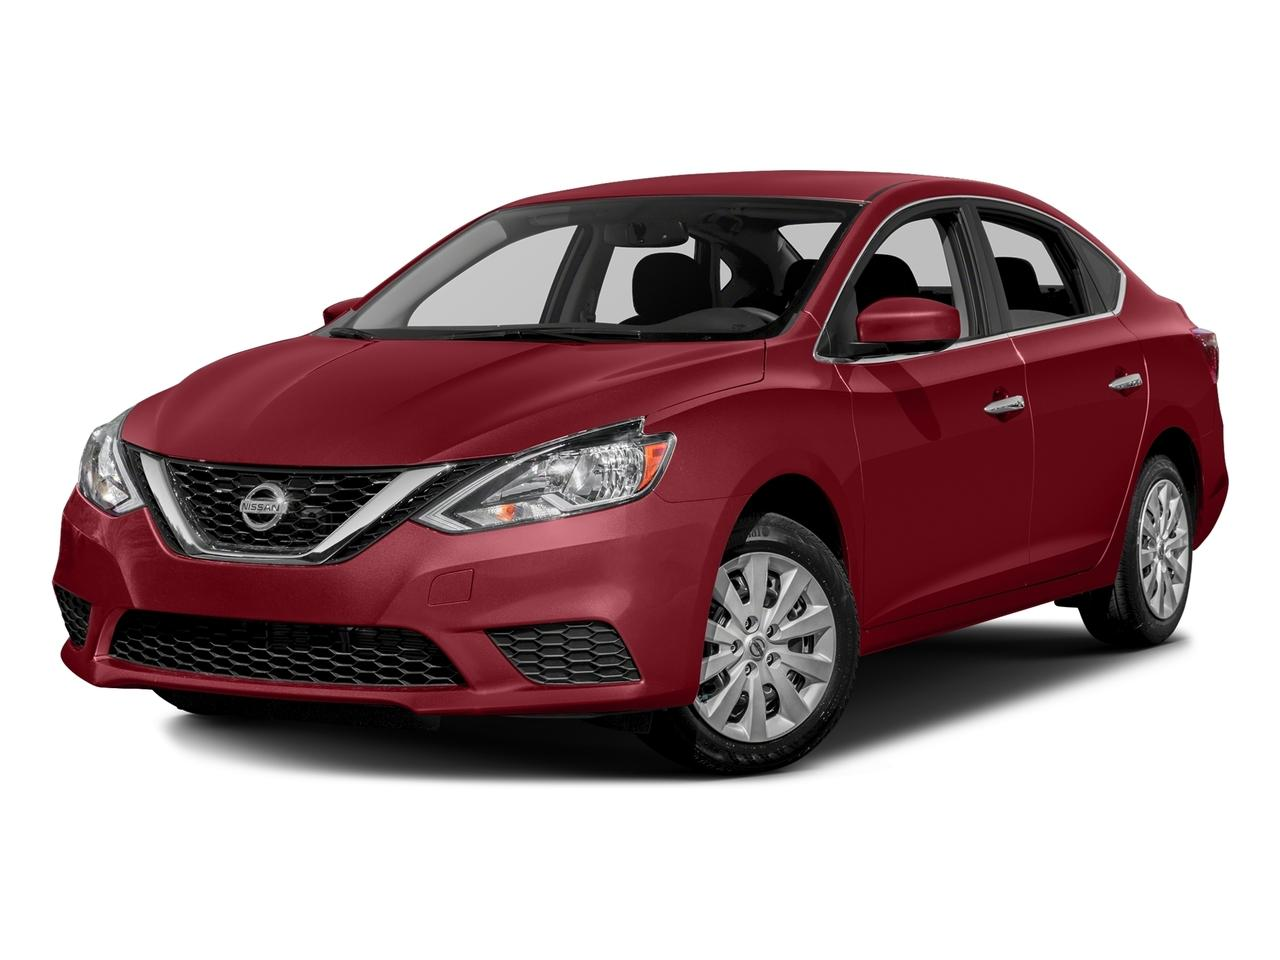 2017 Nissan Sentra Vehicle Photo in Owensboro, KY 42303